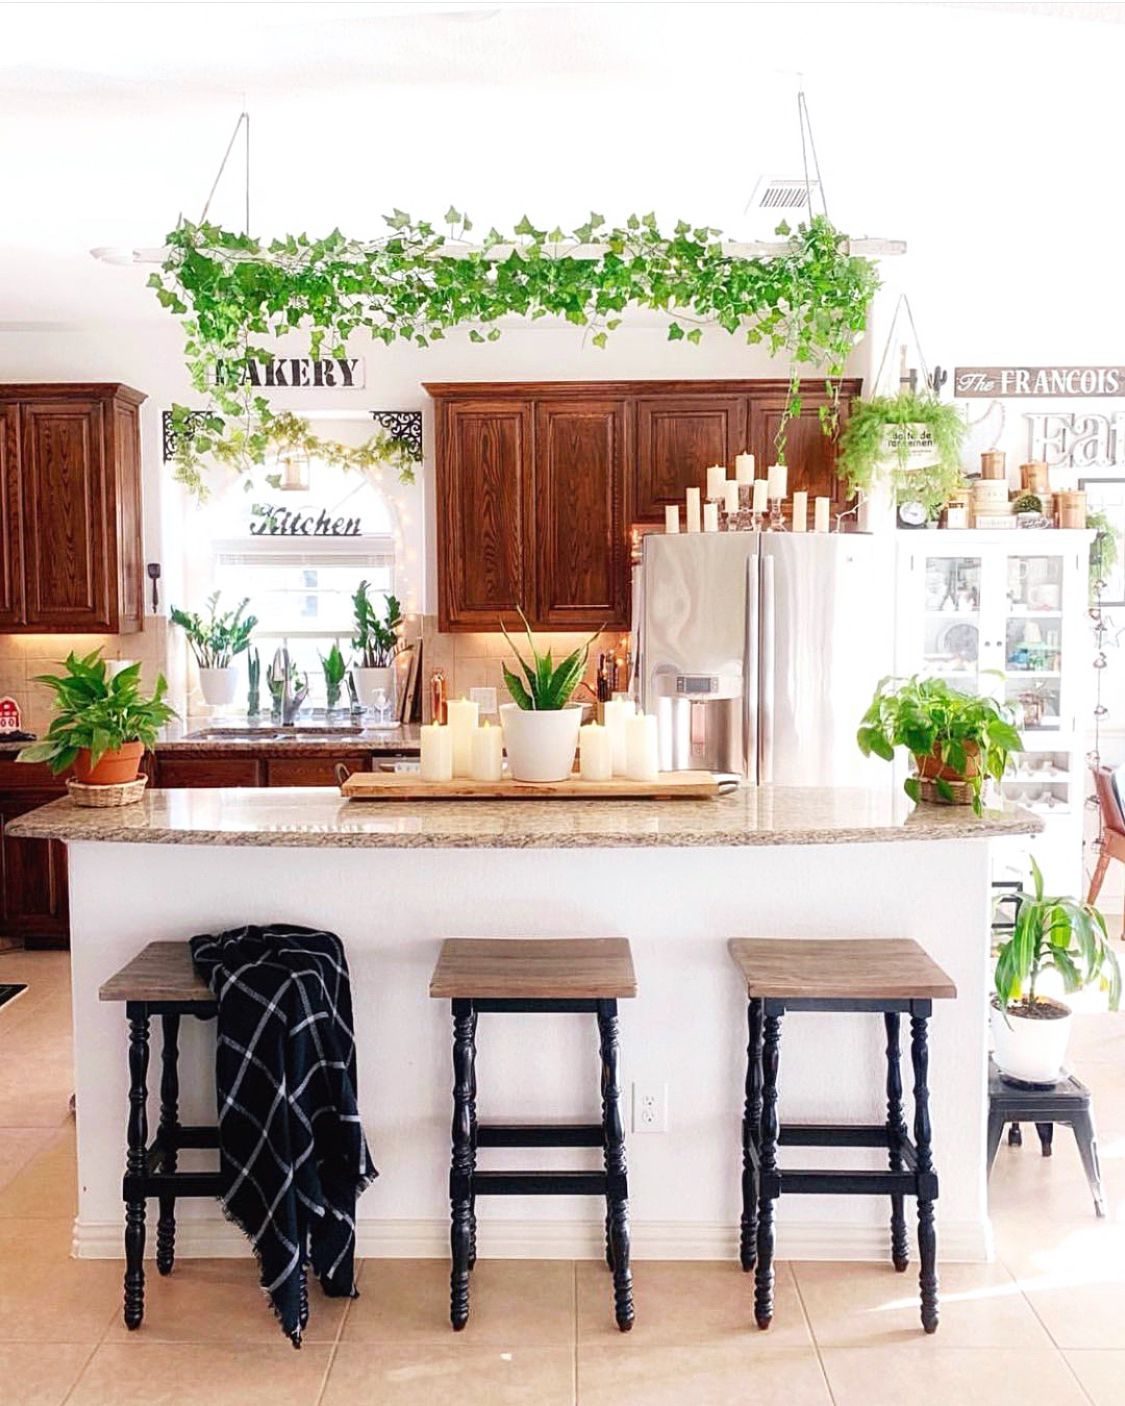 garden in my kitchen chic kitchen decor bohemian kitchen interior design kitchen on boho chic interior design kitchen id=27833